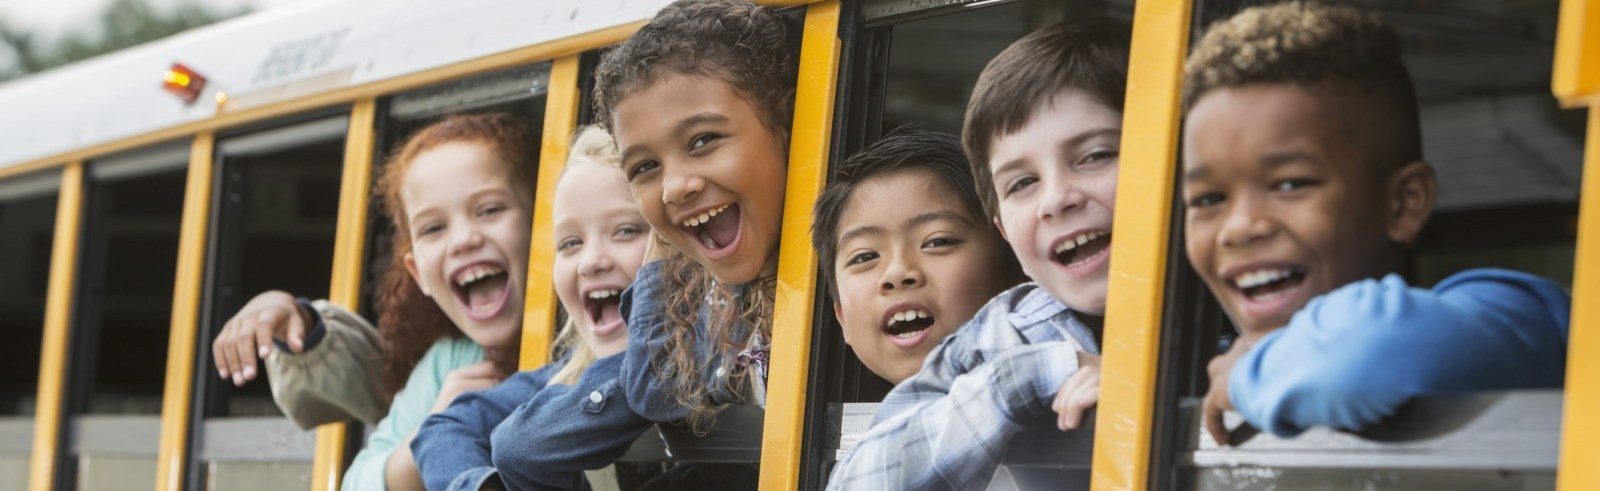 Children smiling with their heads out the bus windows